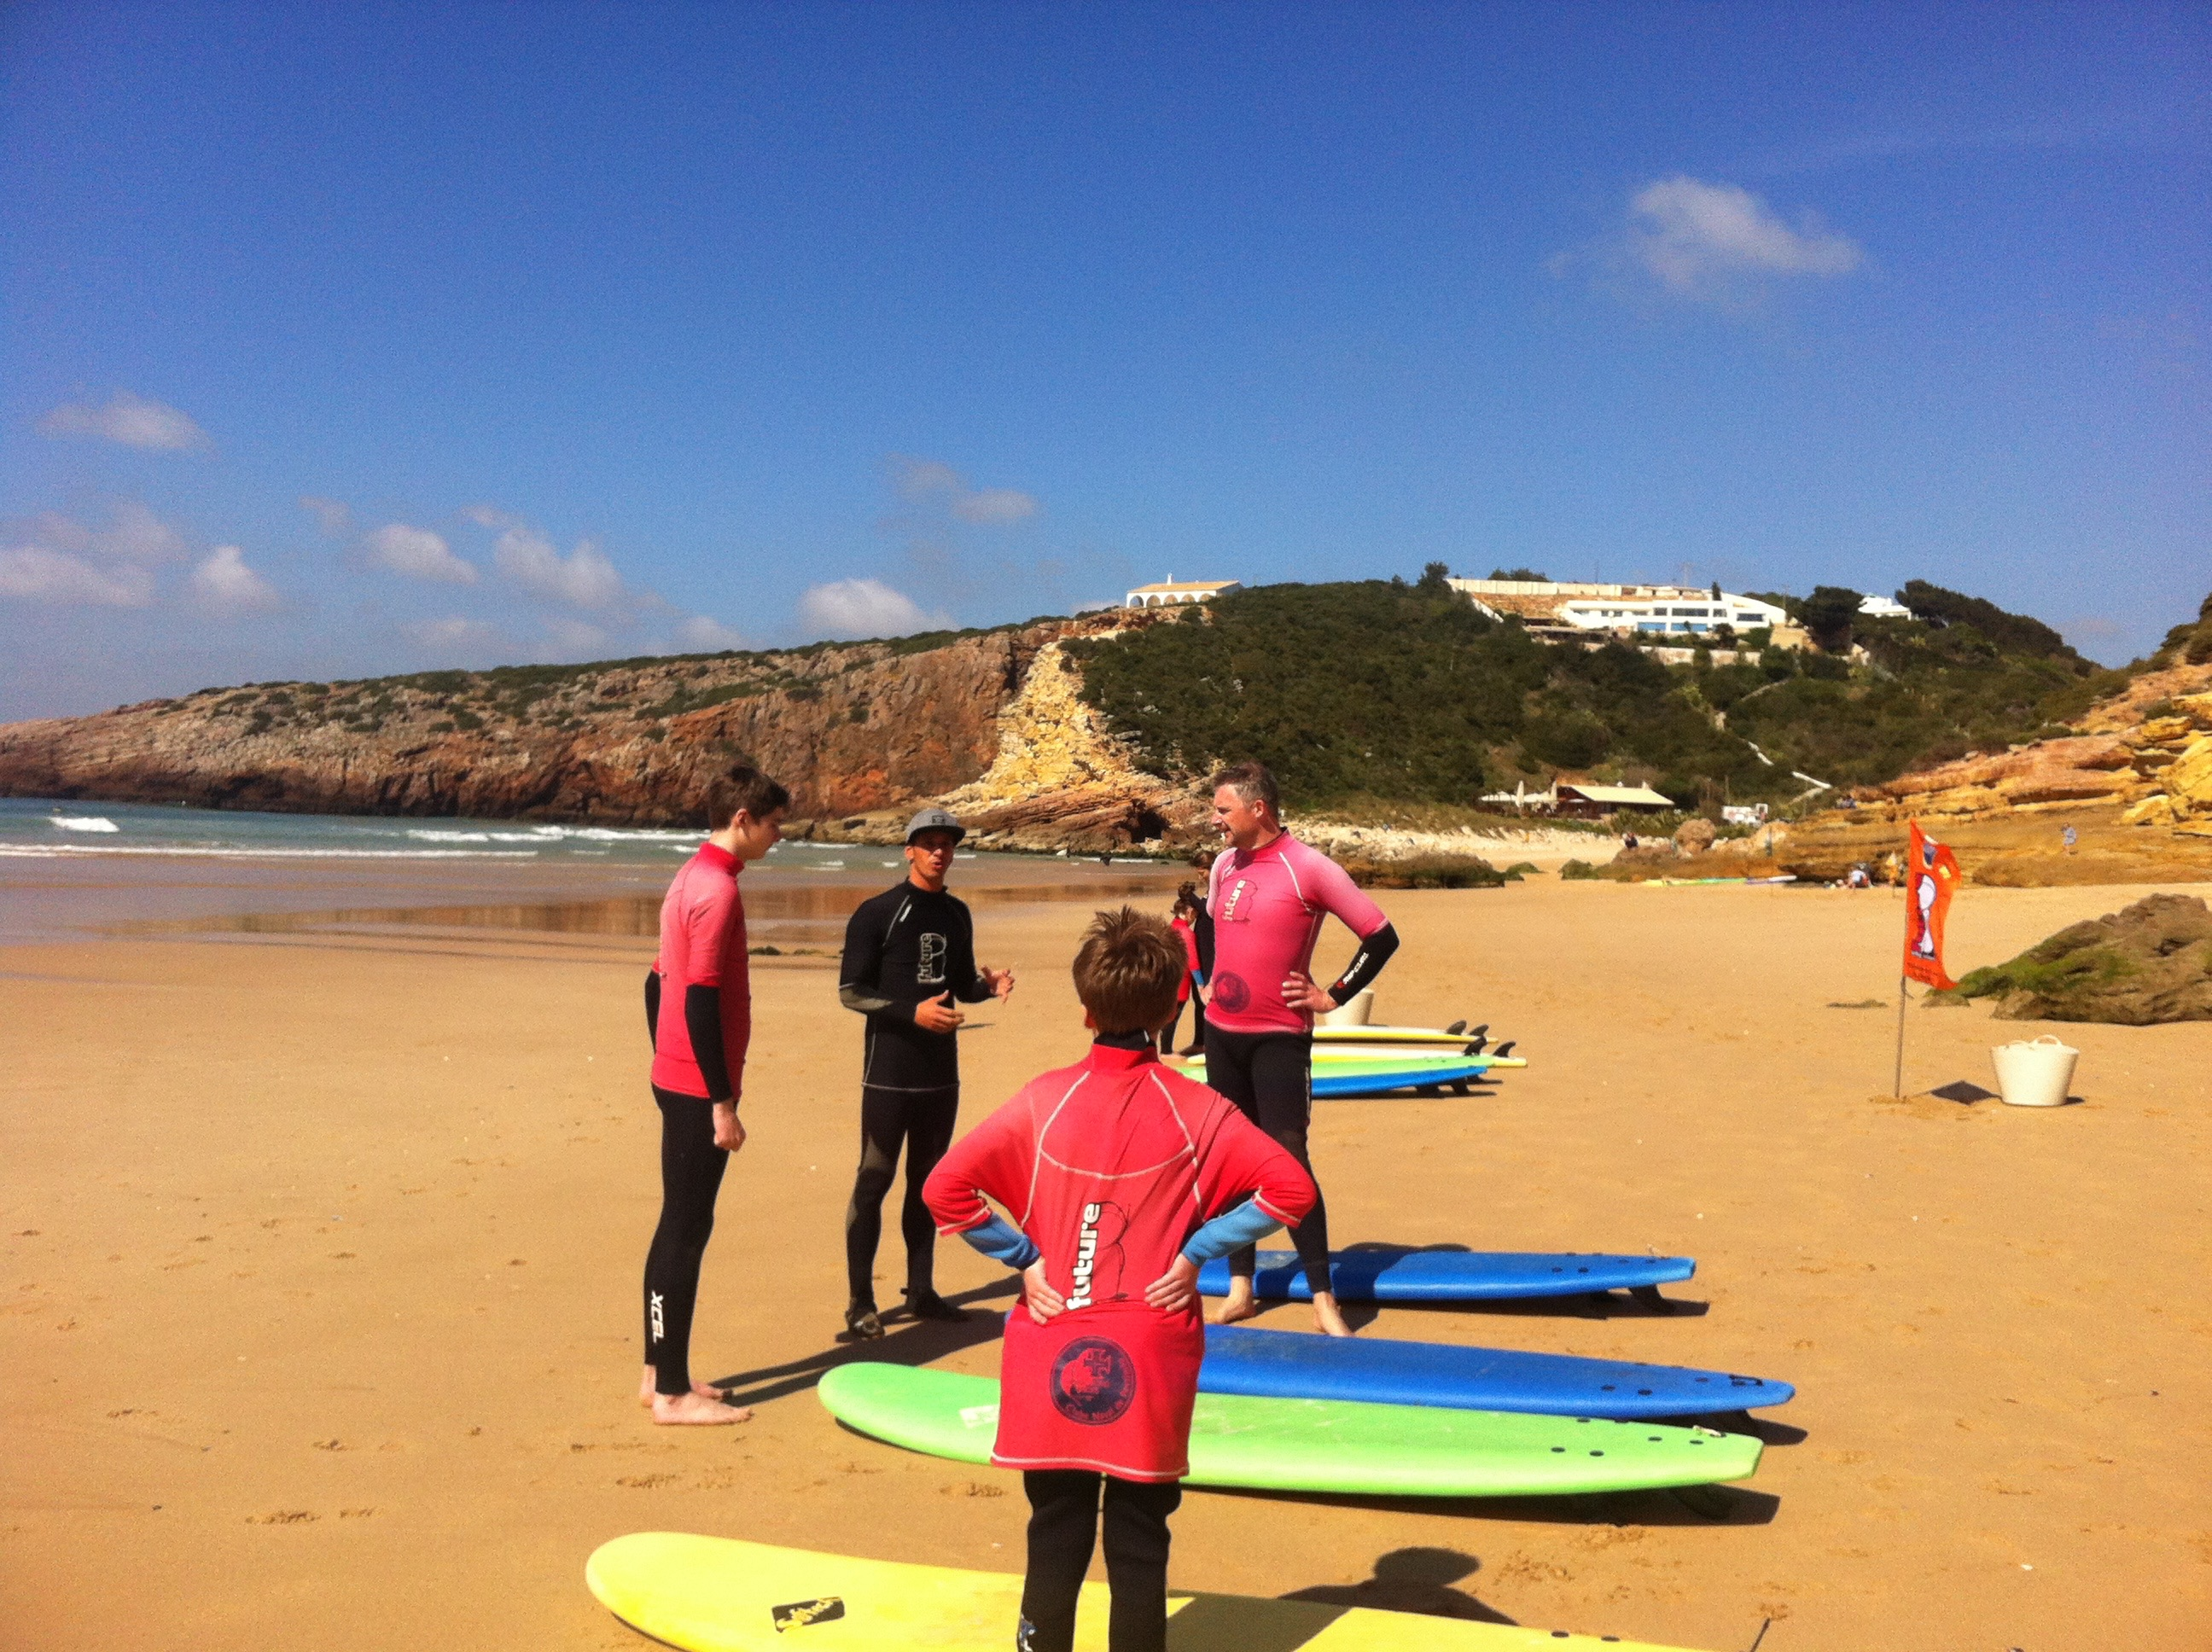 Surf lessons are offered at Martinhal Sagres